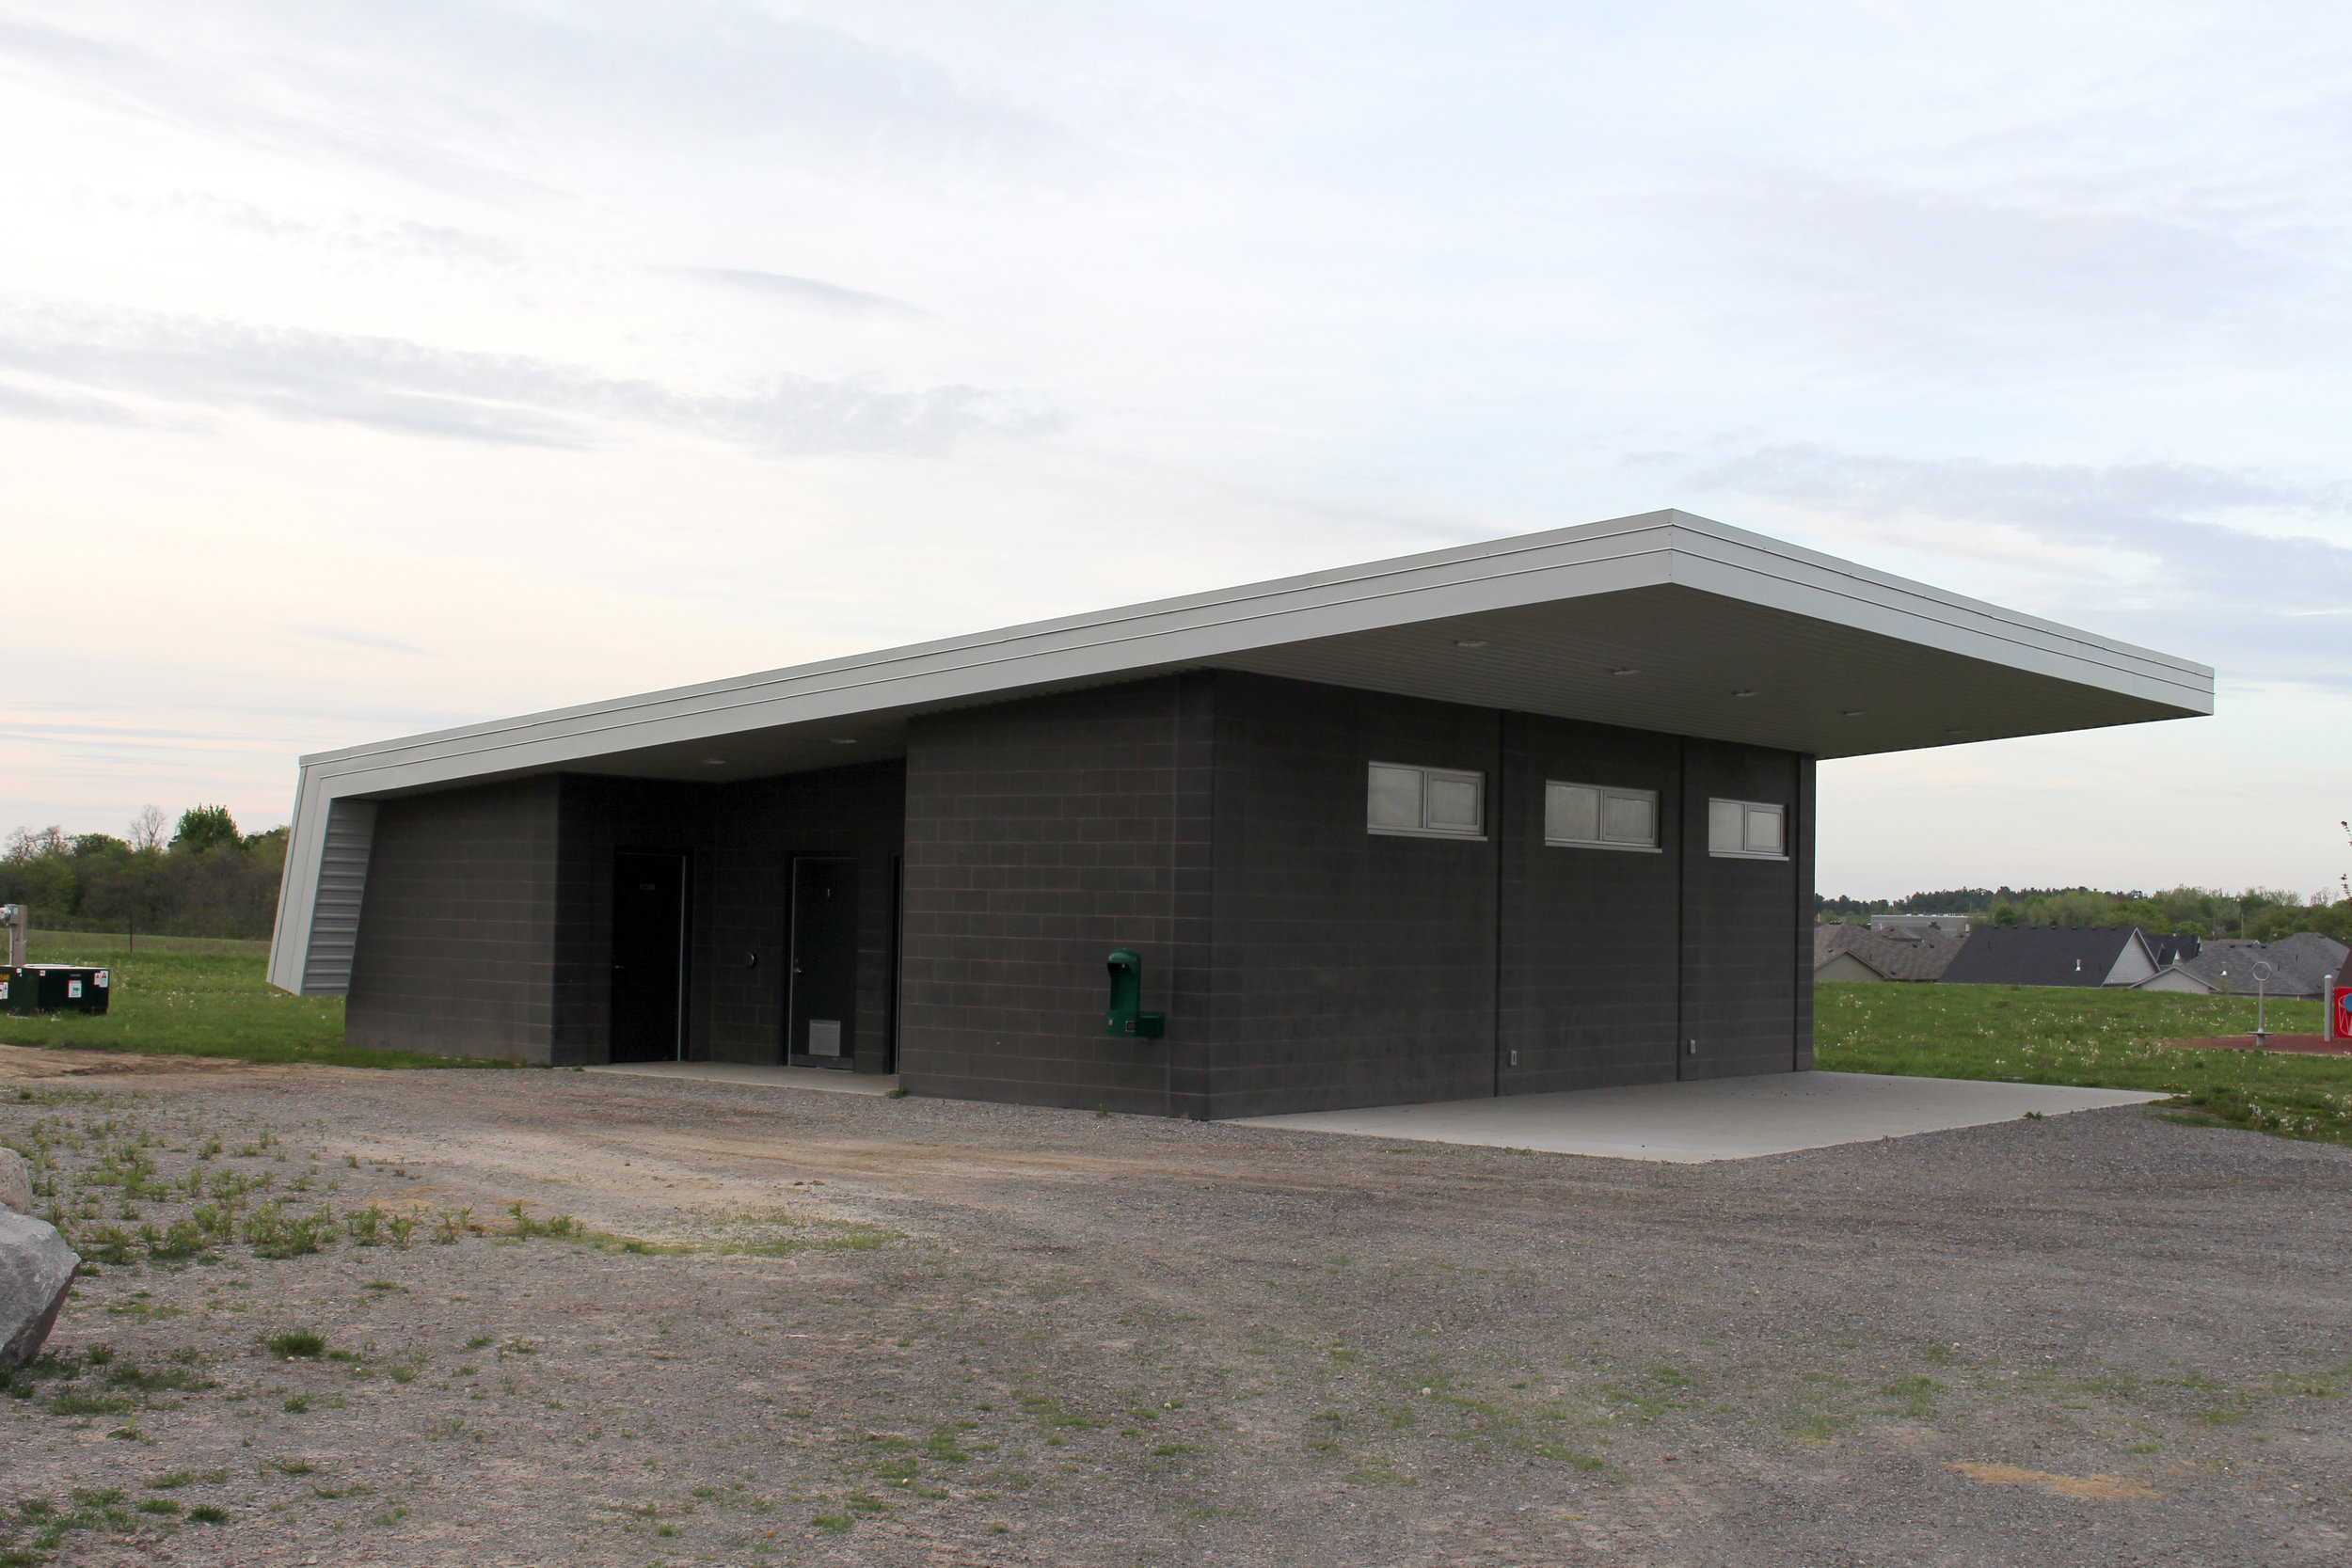 Baulch Road Park Washroom Facility